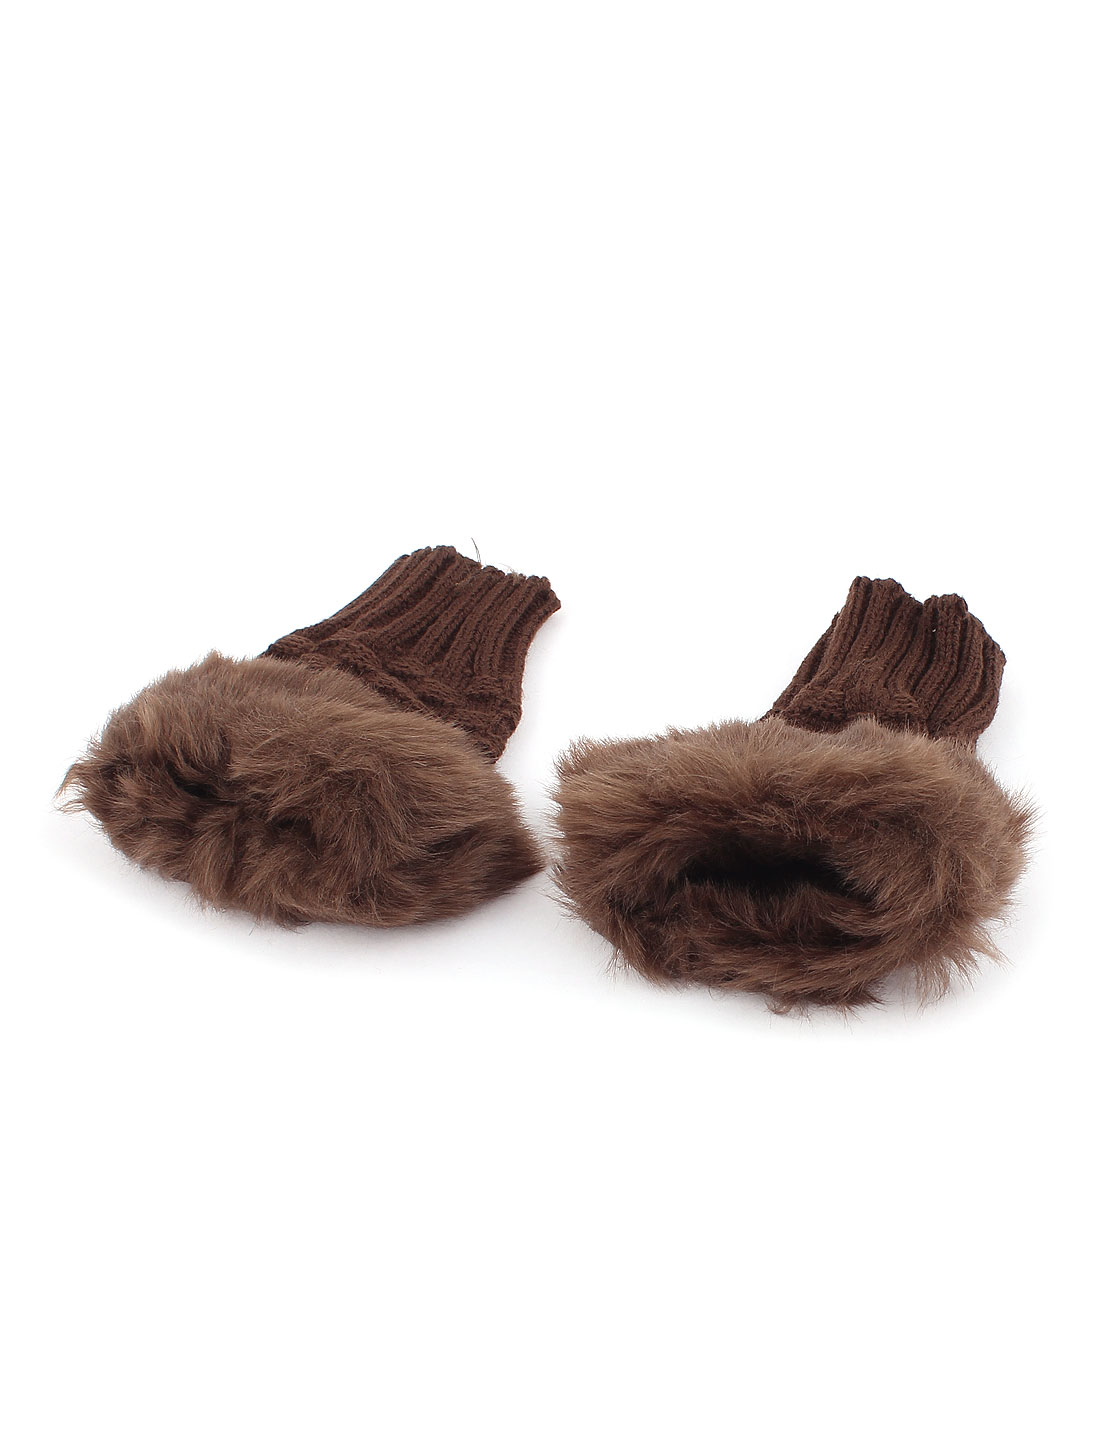 Lady Winter Warmer Faux Fur Decor Elastic Knitted Computer Fingerless Gloves Brown Pair